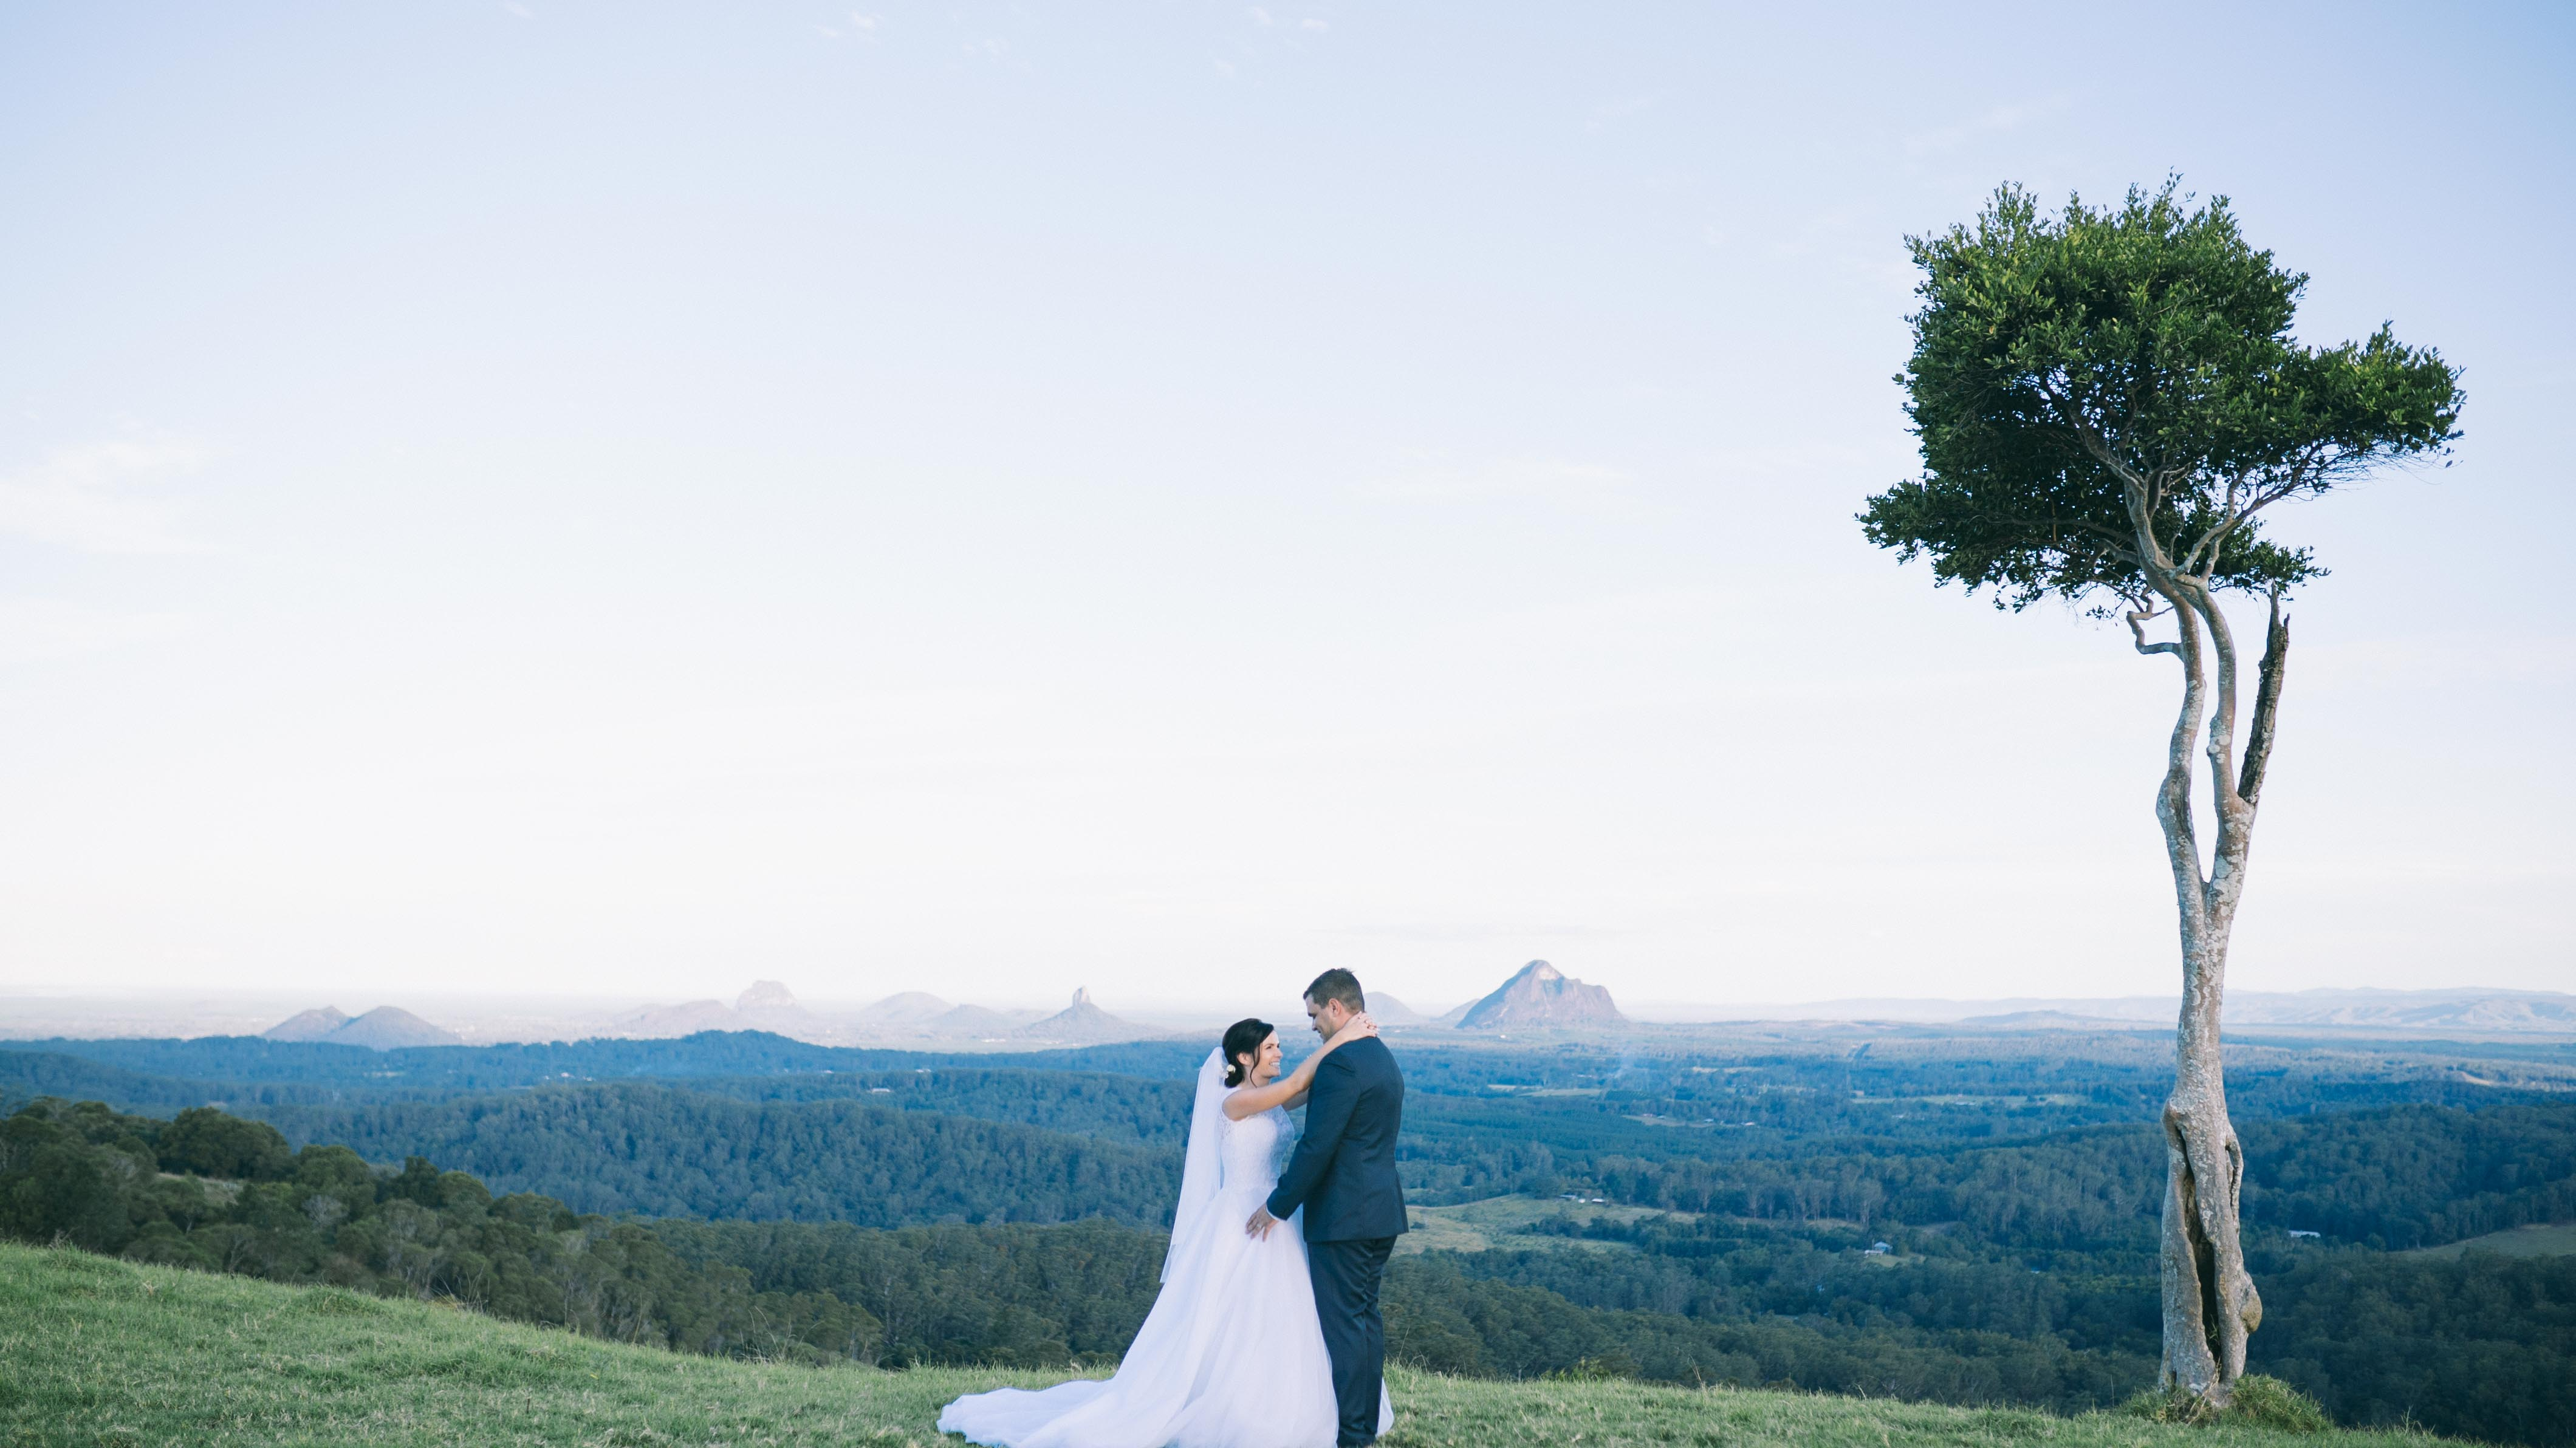 Chris + Nikky | 11/06/2016 | Maleny Manor, Maleny, QLD